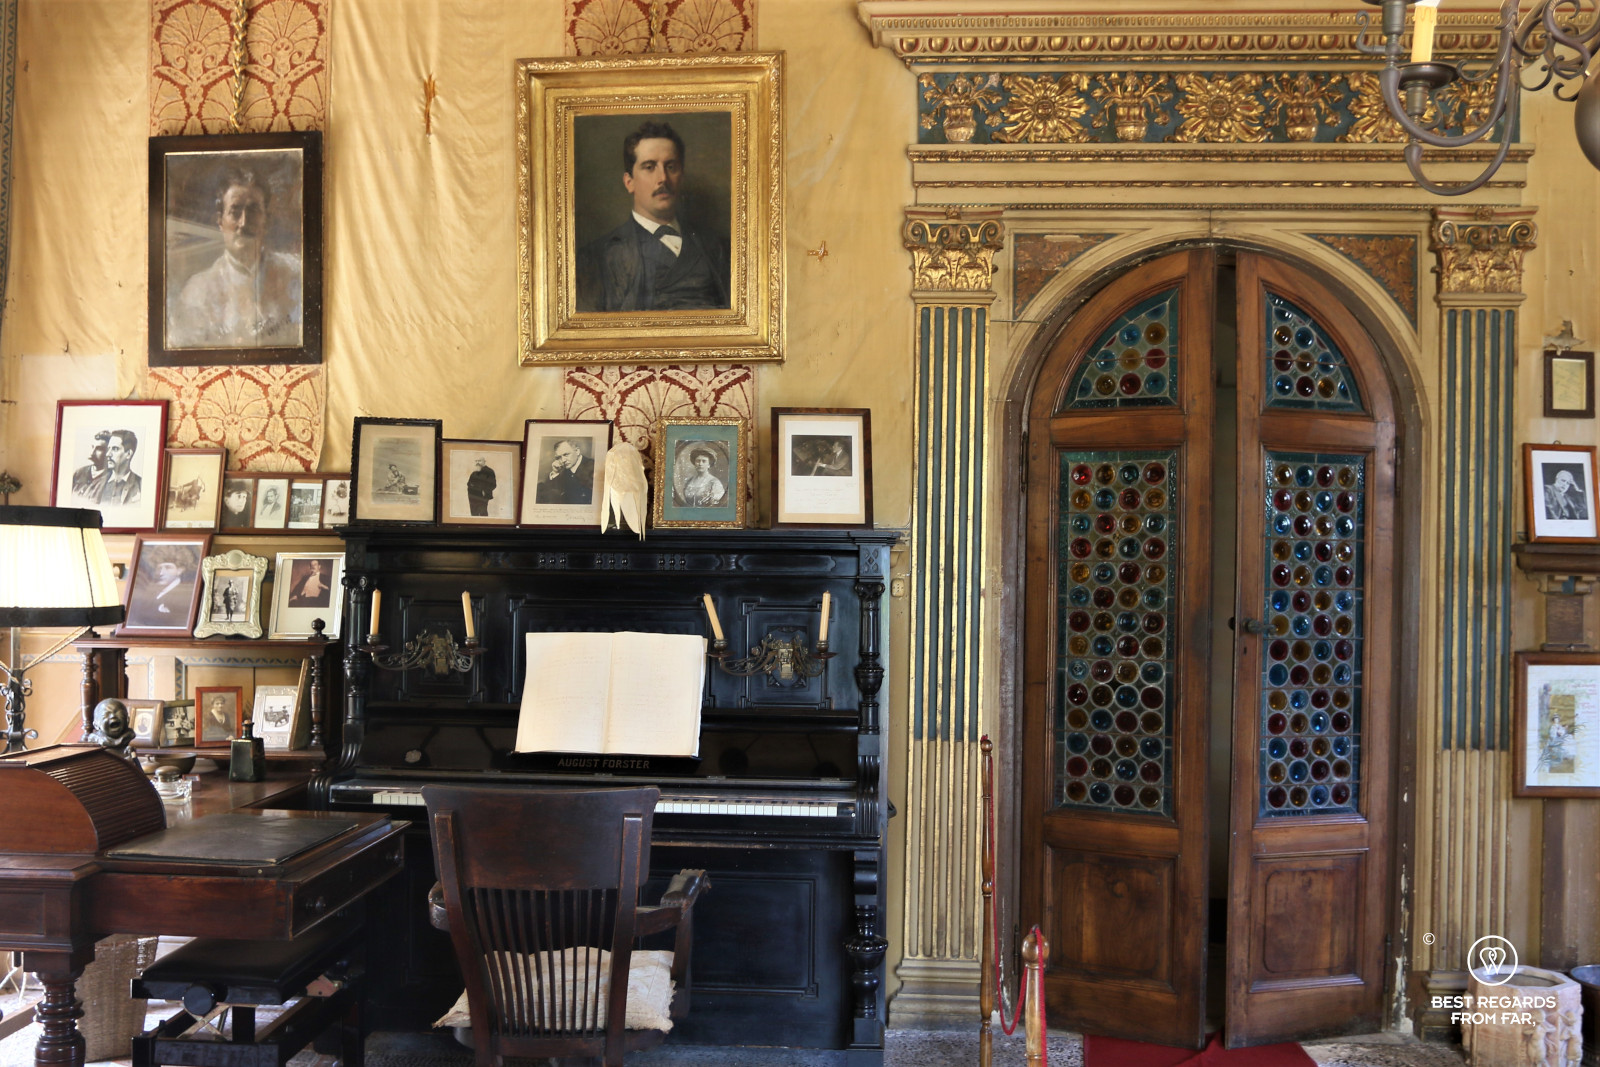 The study where Puccini composed in his villa in Torre del Lago, Italy.